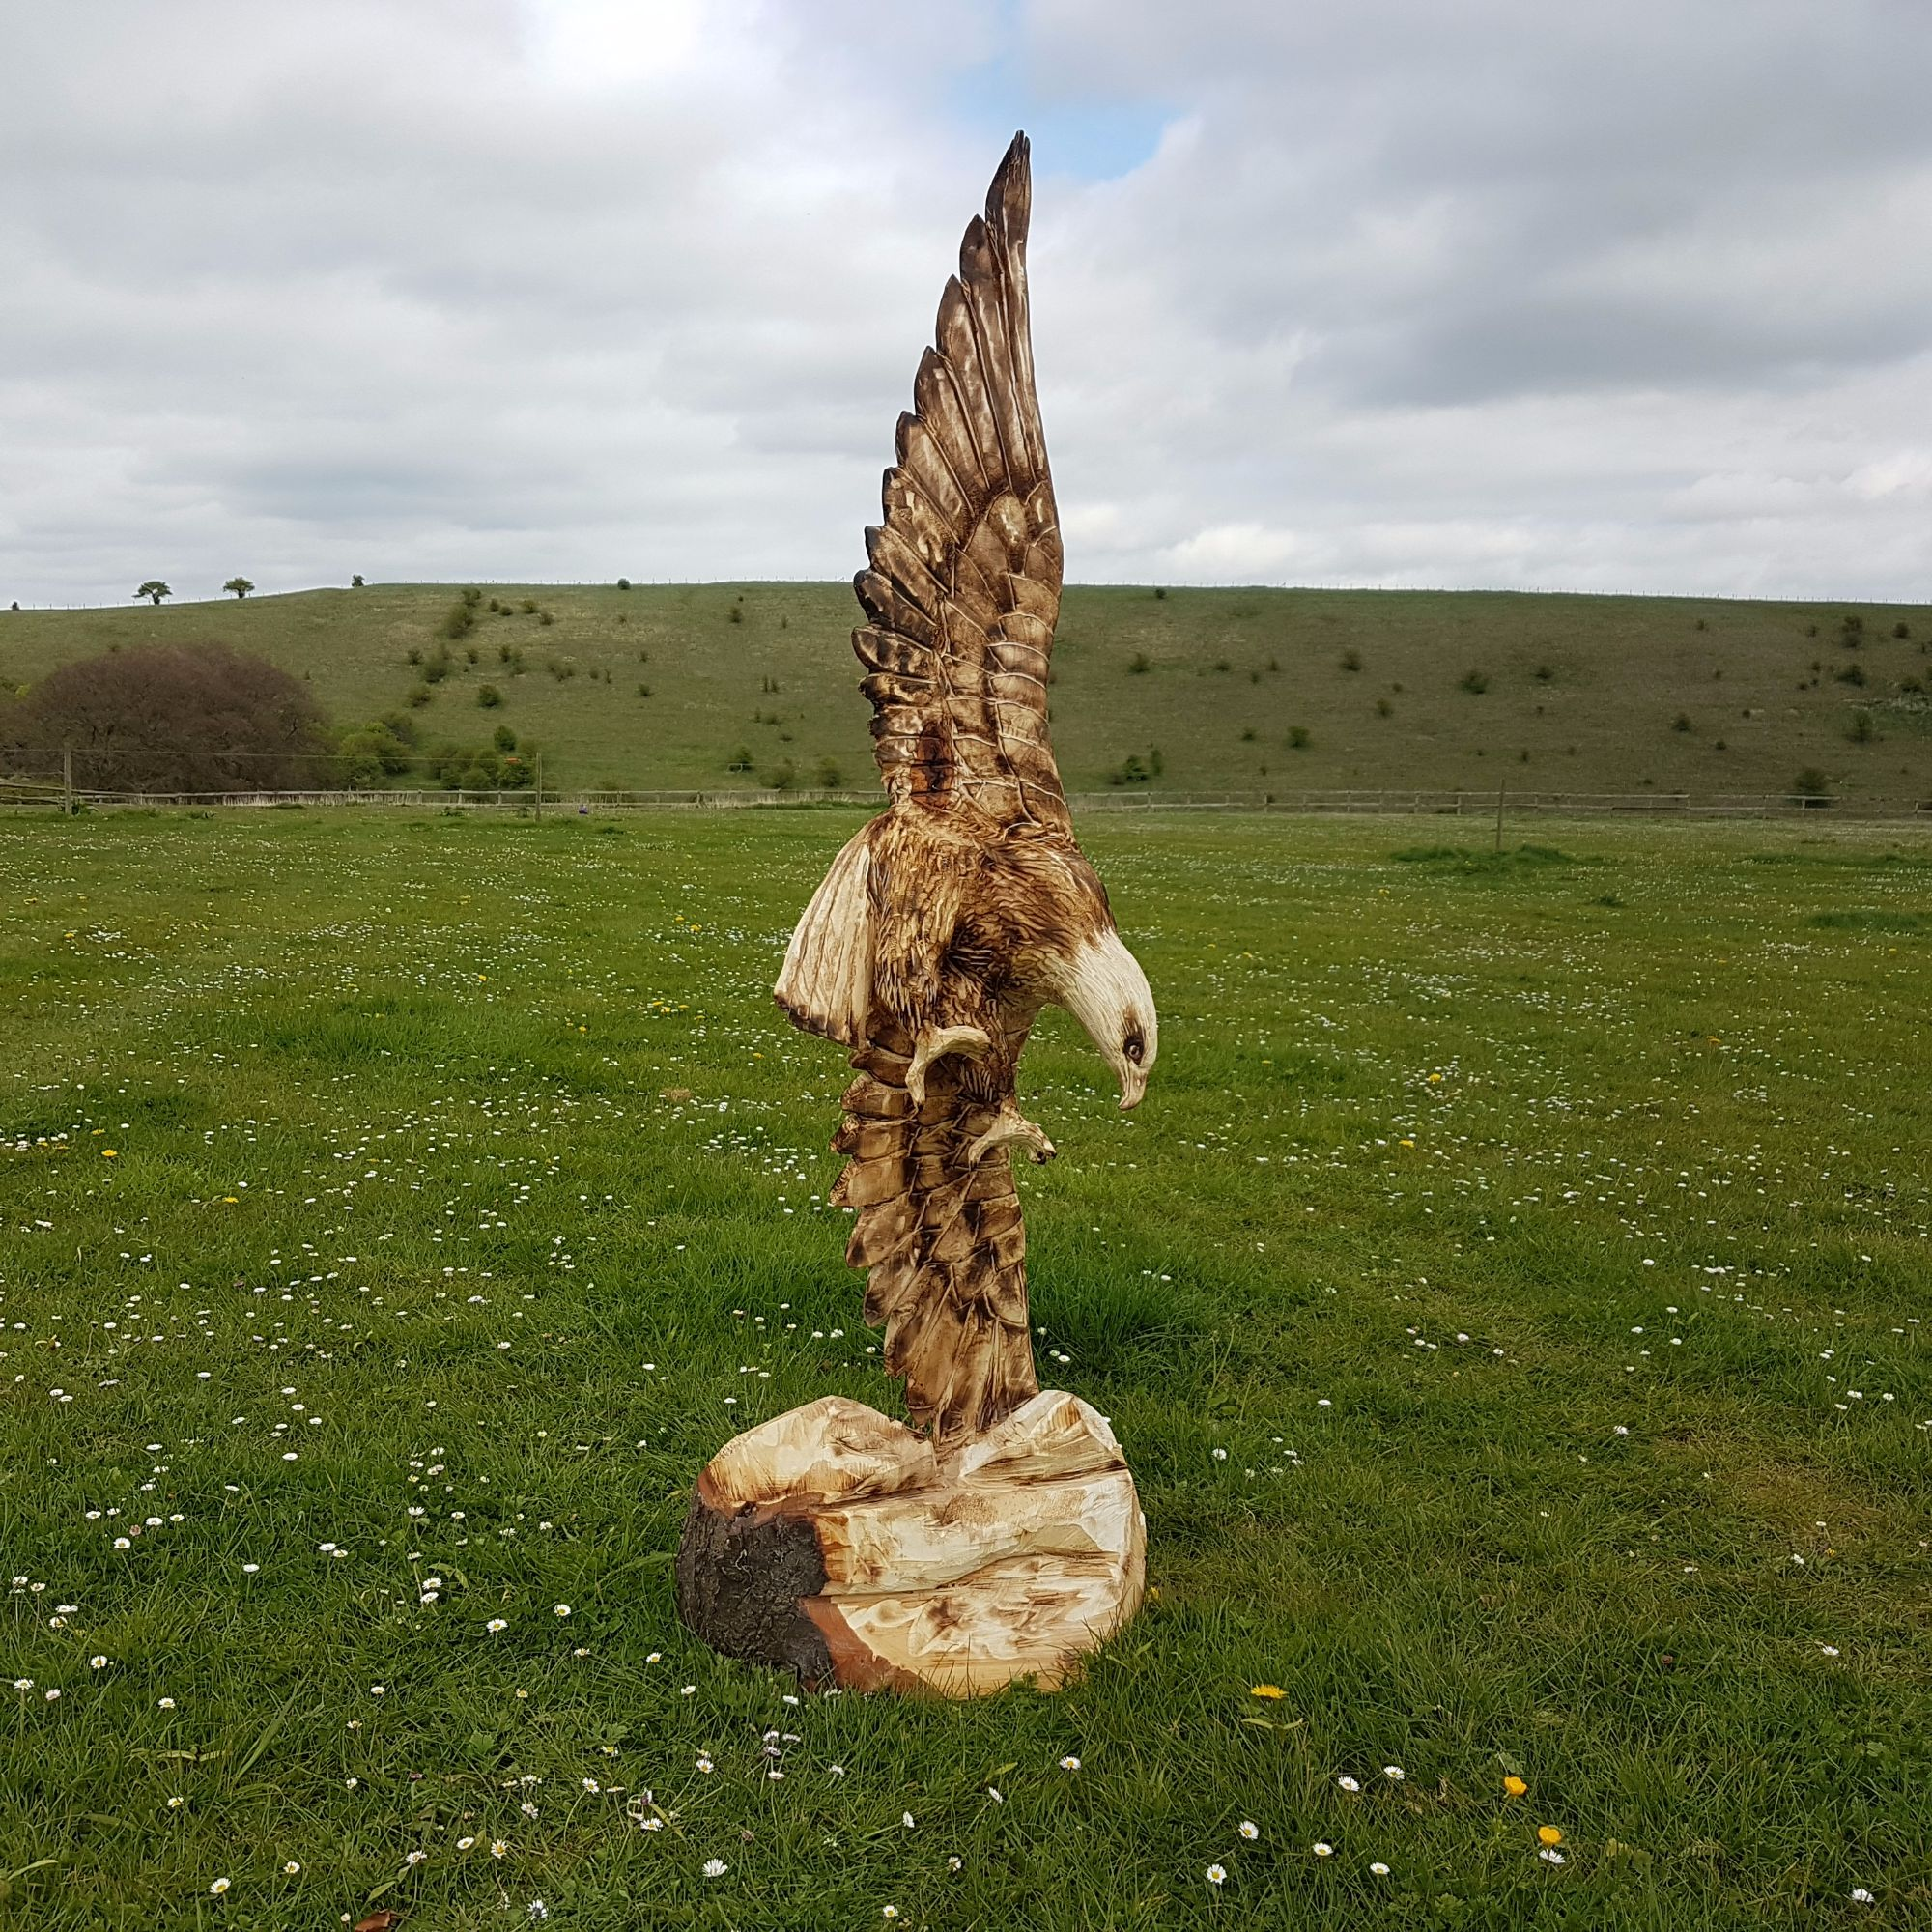 Eagle Chainsaw sculpture